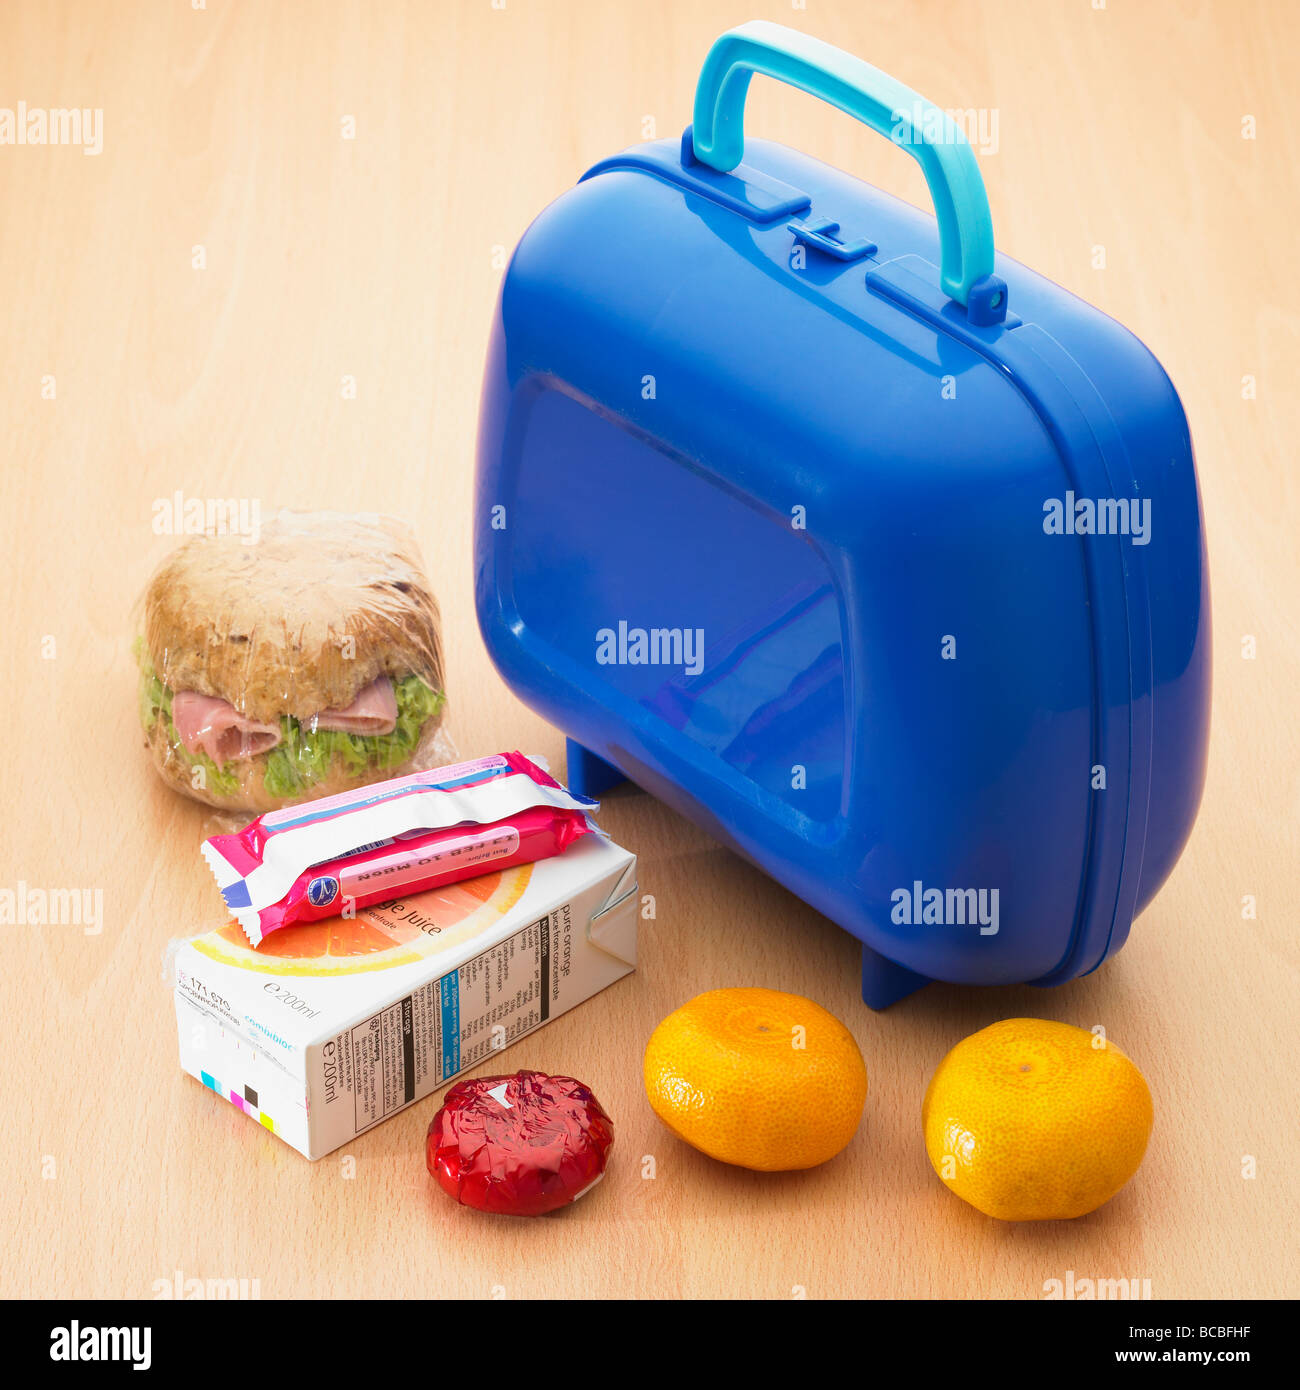 Healthy childrens school lunch box with wholemeal roll,satsumas,light cheese, orange juice and biscuit. - Stock Image